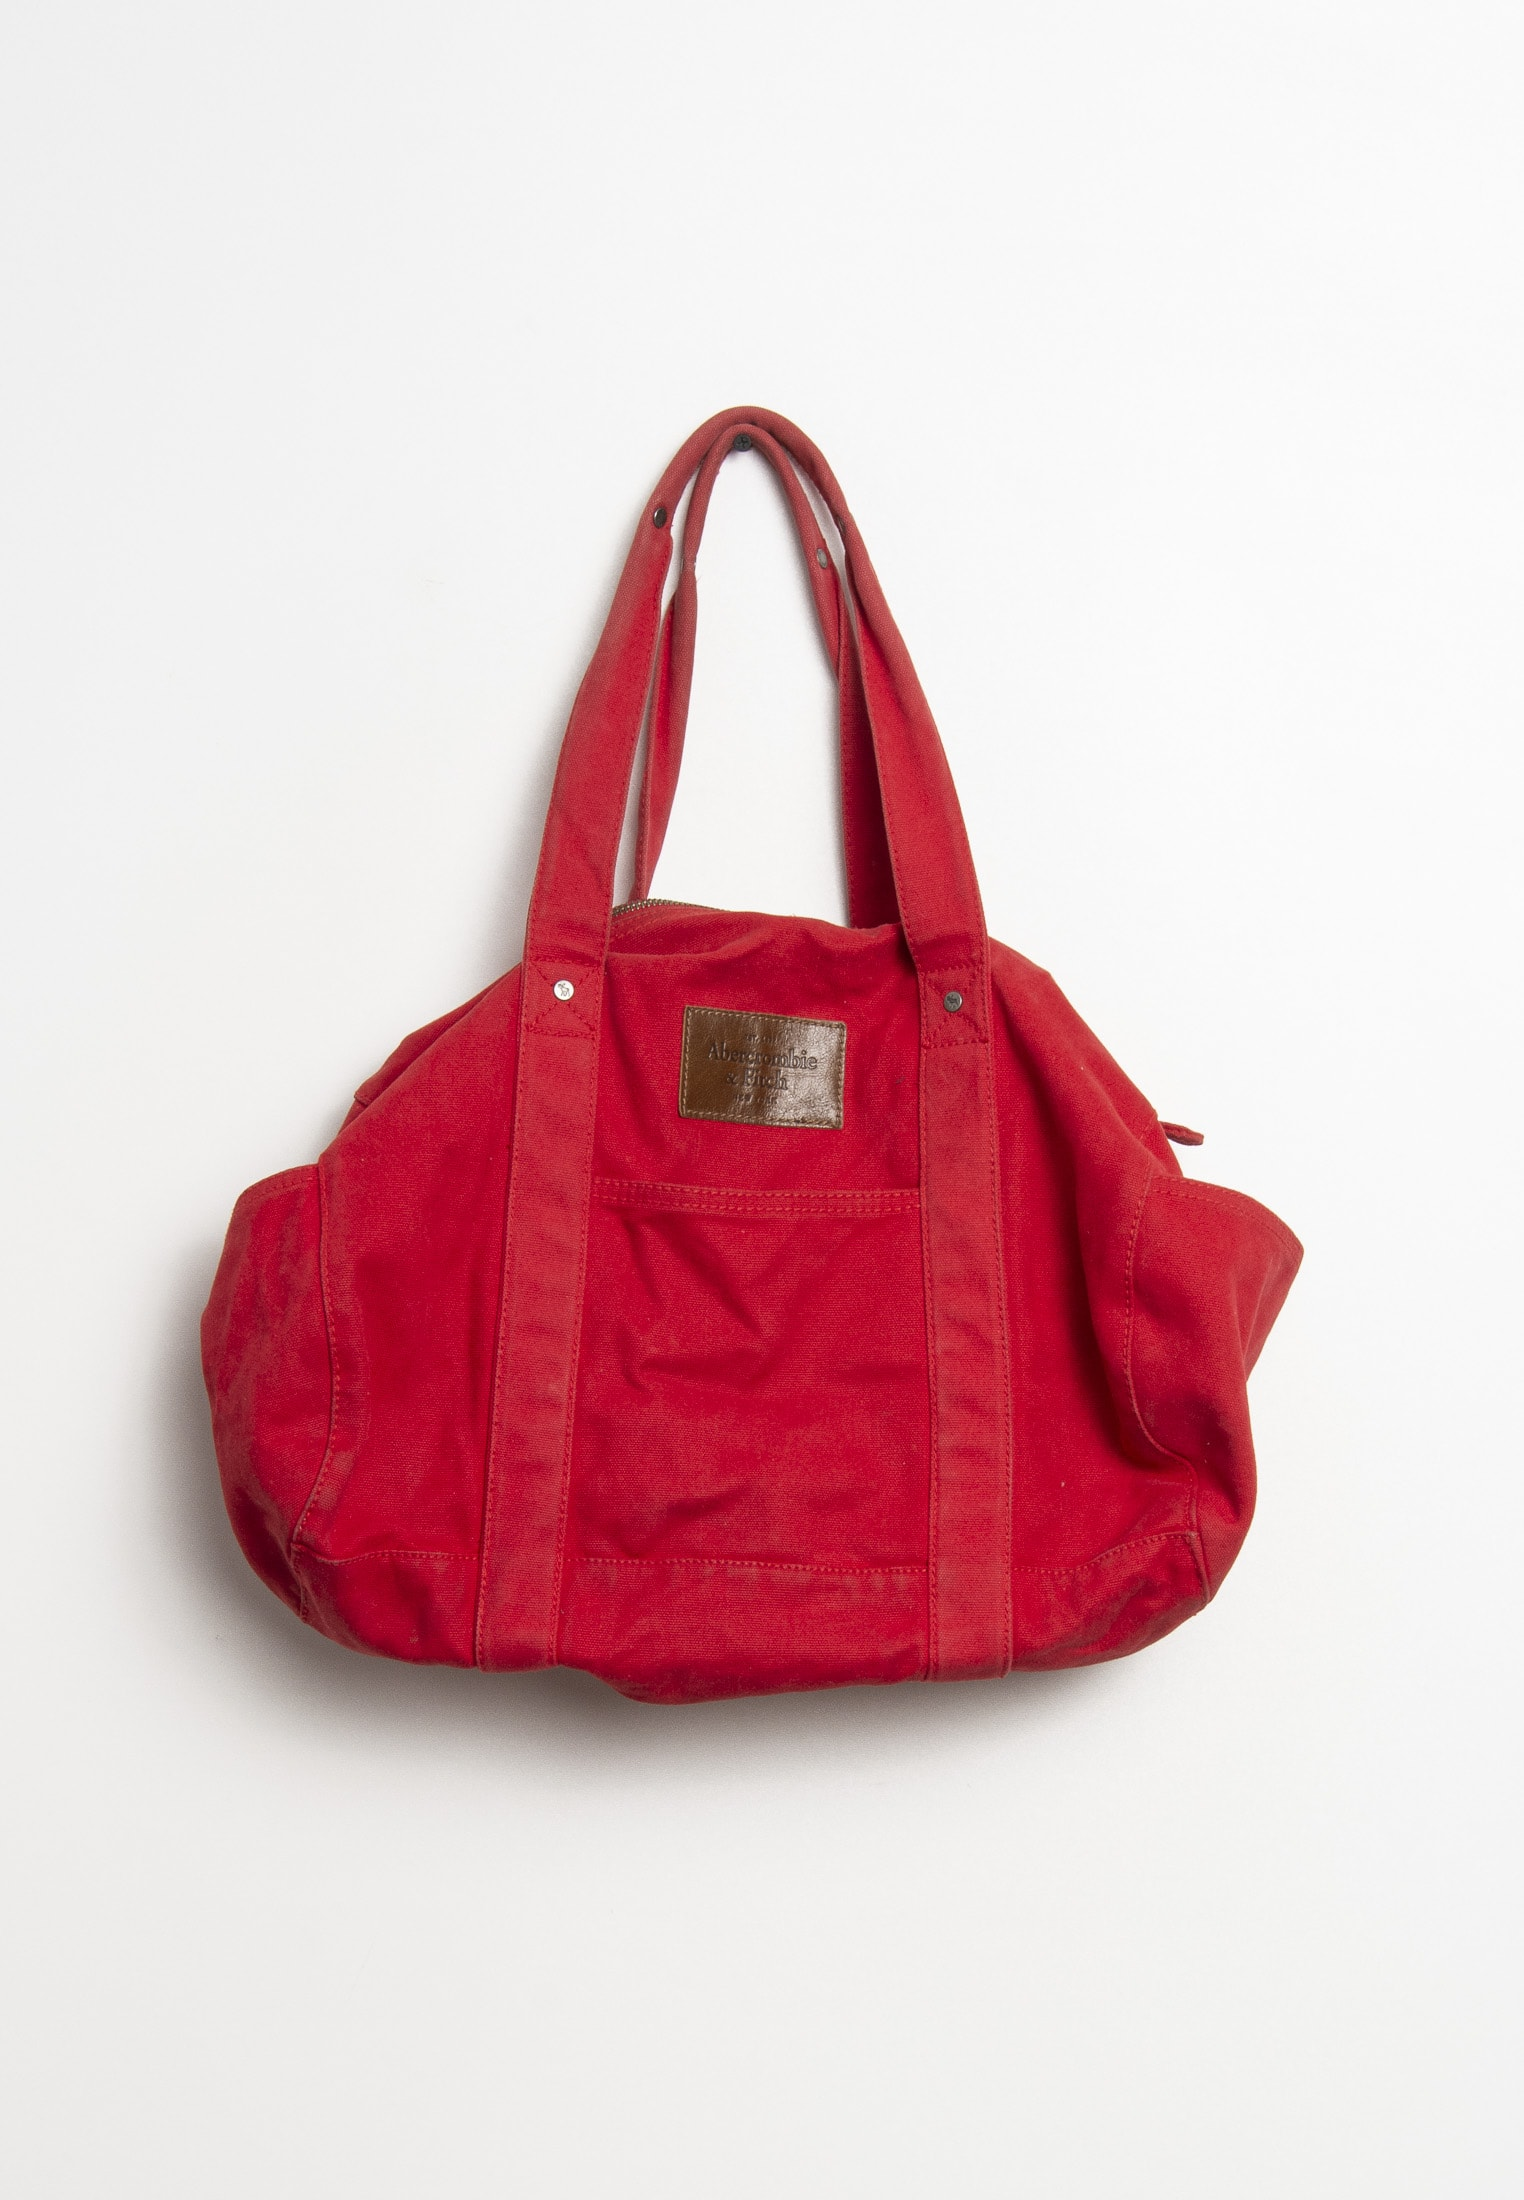 Abercrombie & Fitch Tasche Rot